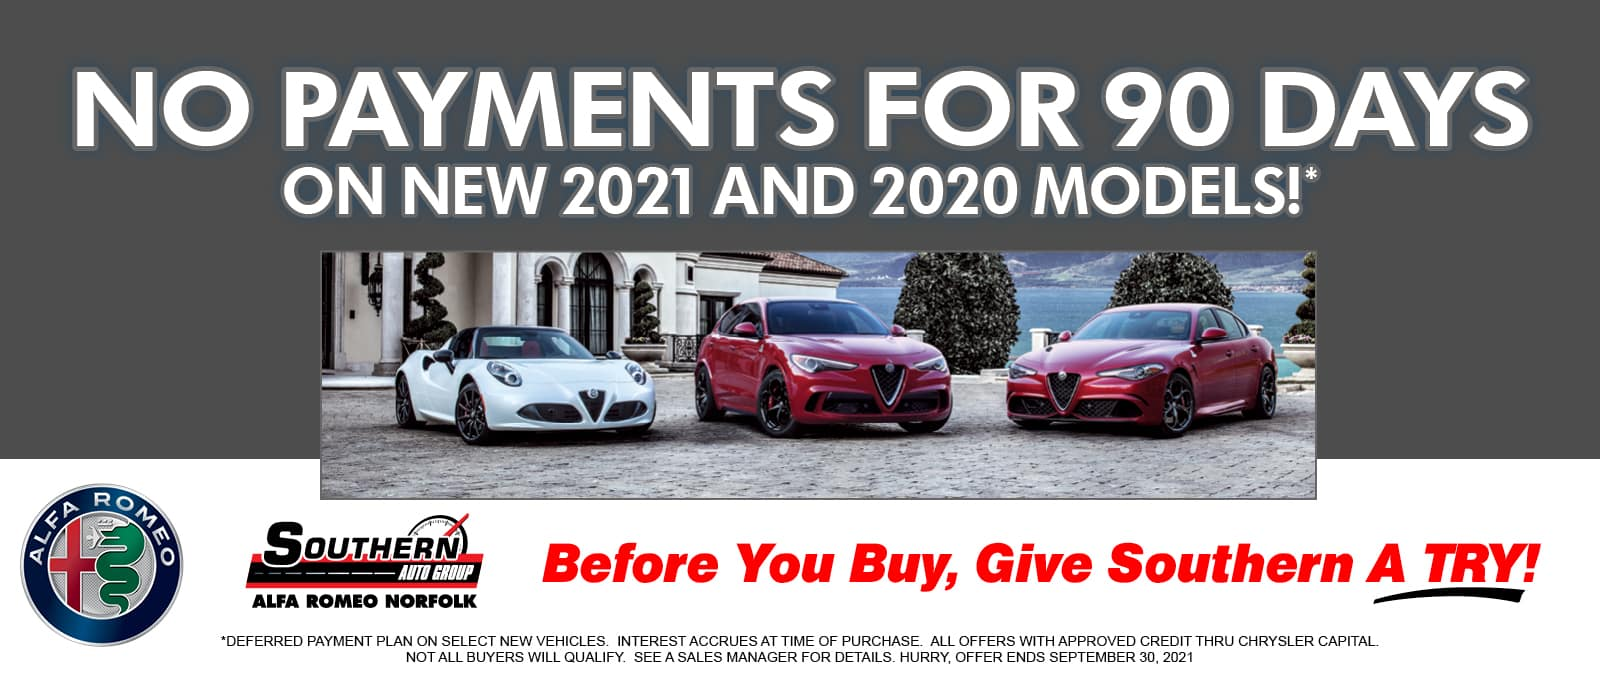 No Payments for 90 Days – Southern Alfa Romeo 2